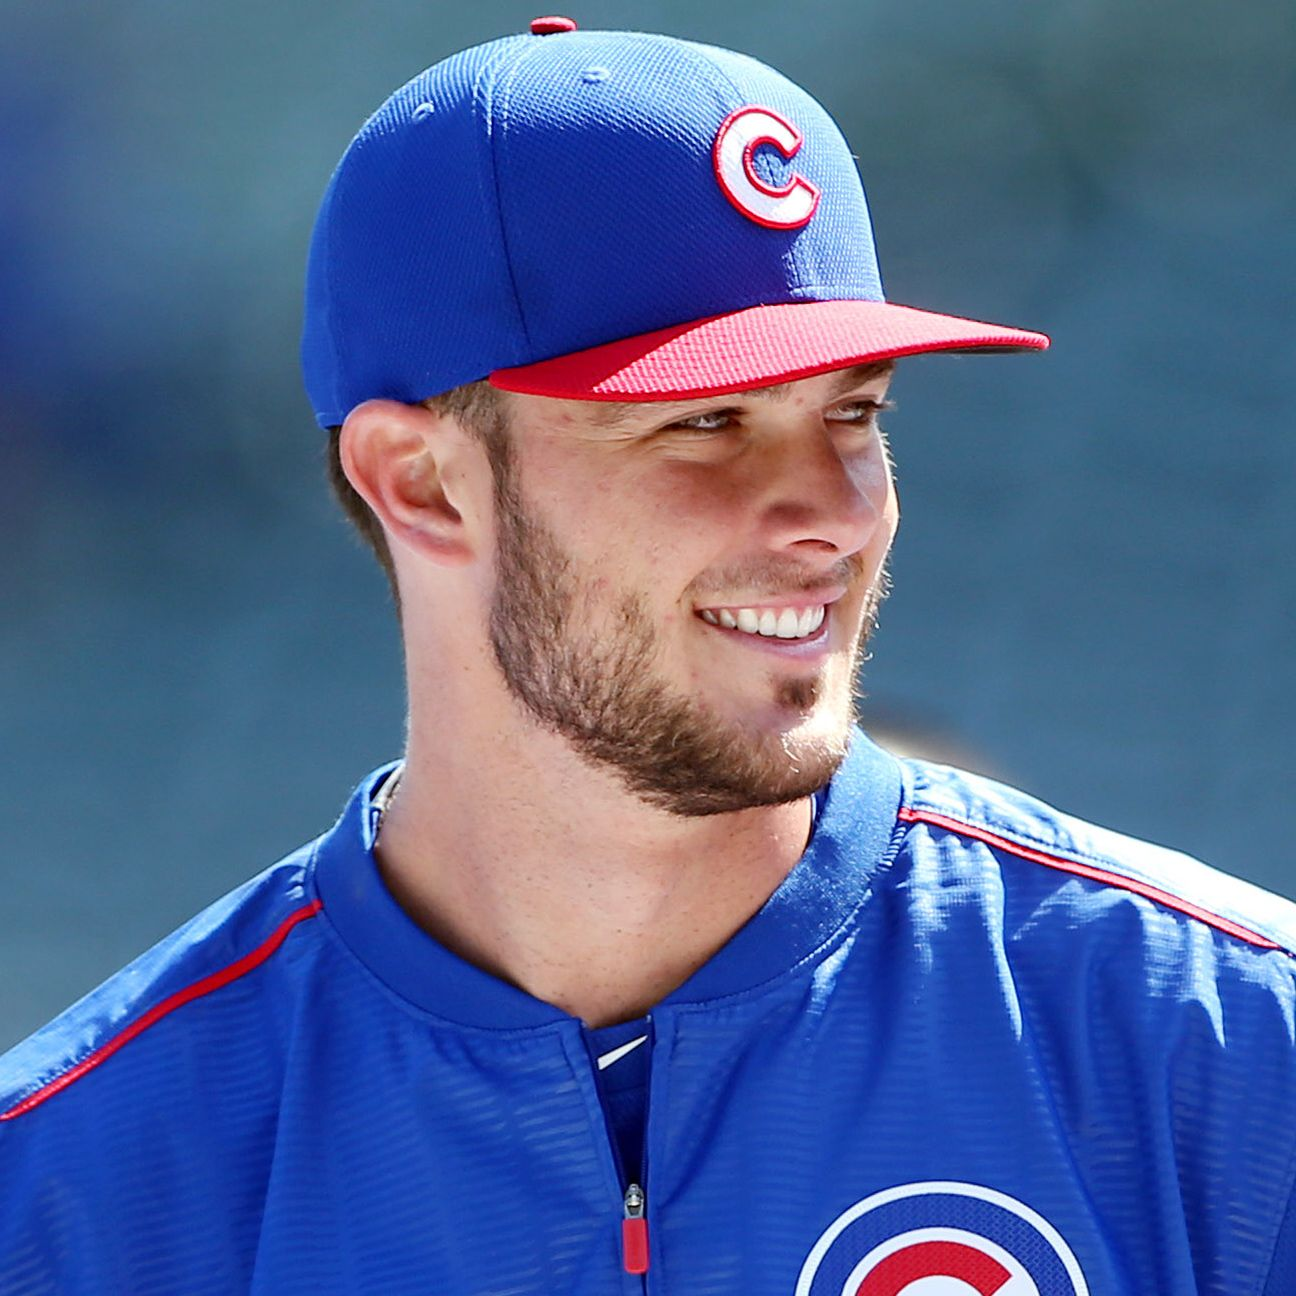 Chicago Cubs lineup shuffle finds Kris Bryant in right field Chicago Cubs Blog ESPN